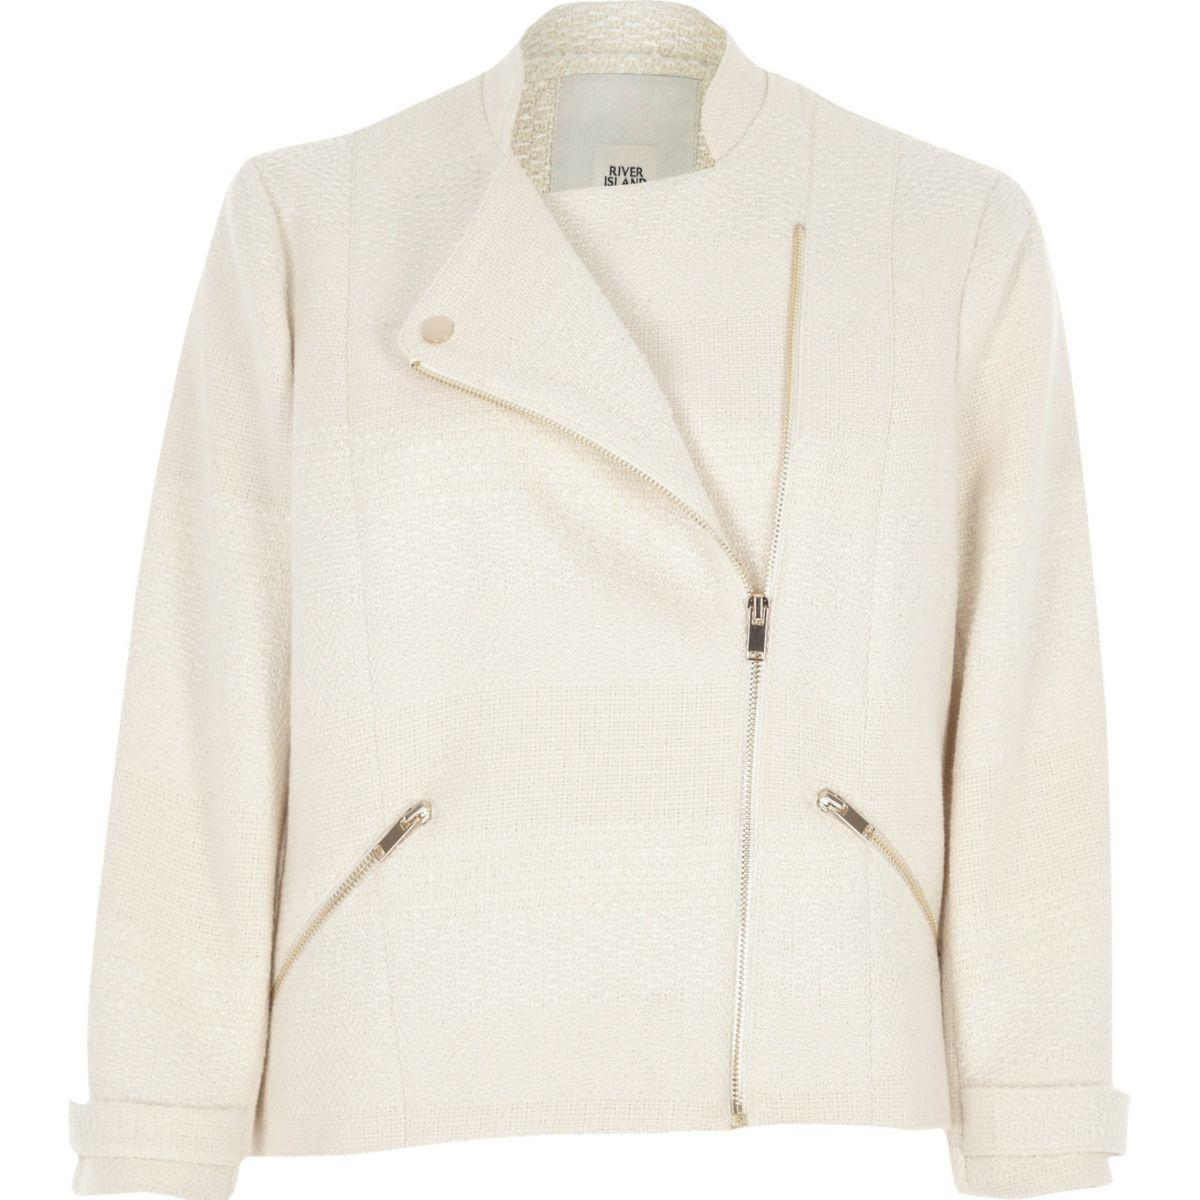 Cream Striped Blazer River Island